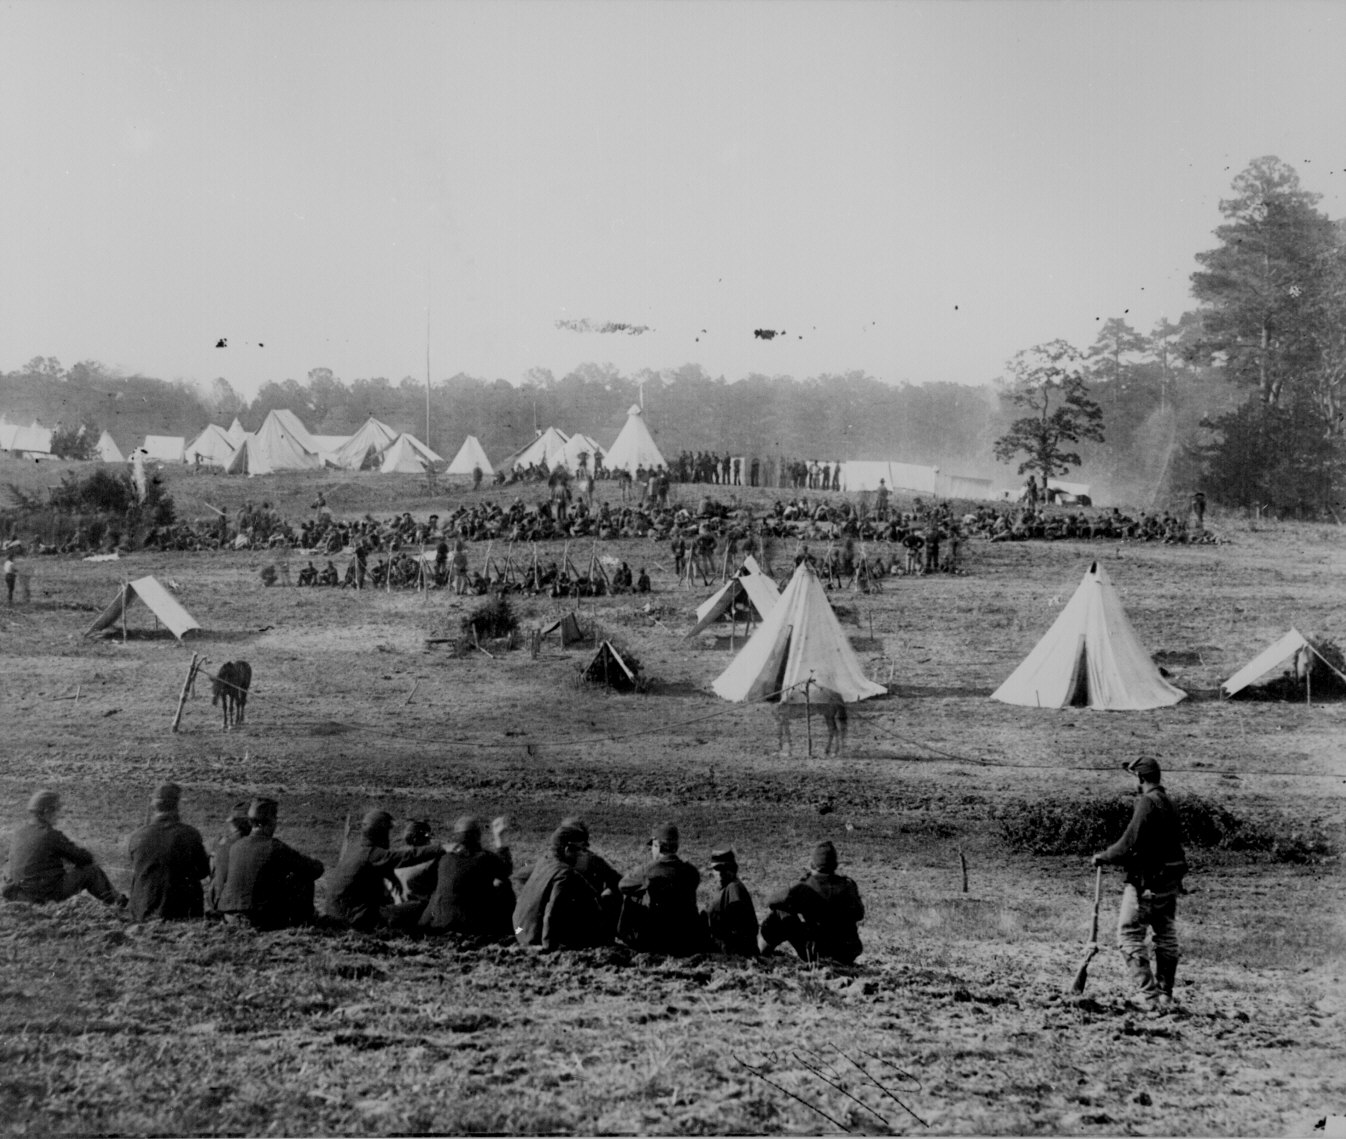 69. confederate prisoners captured in the shenandoah valleybeing